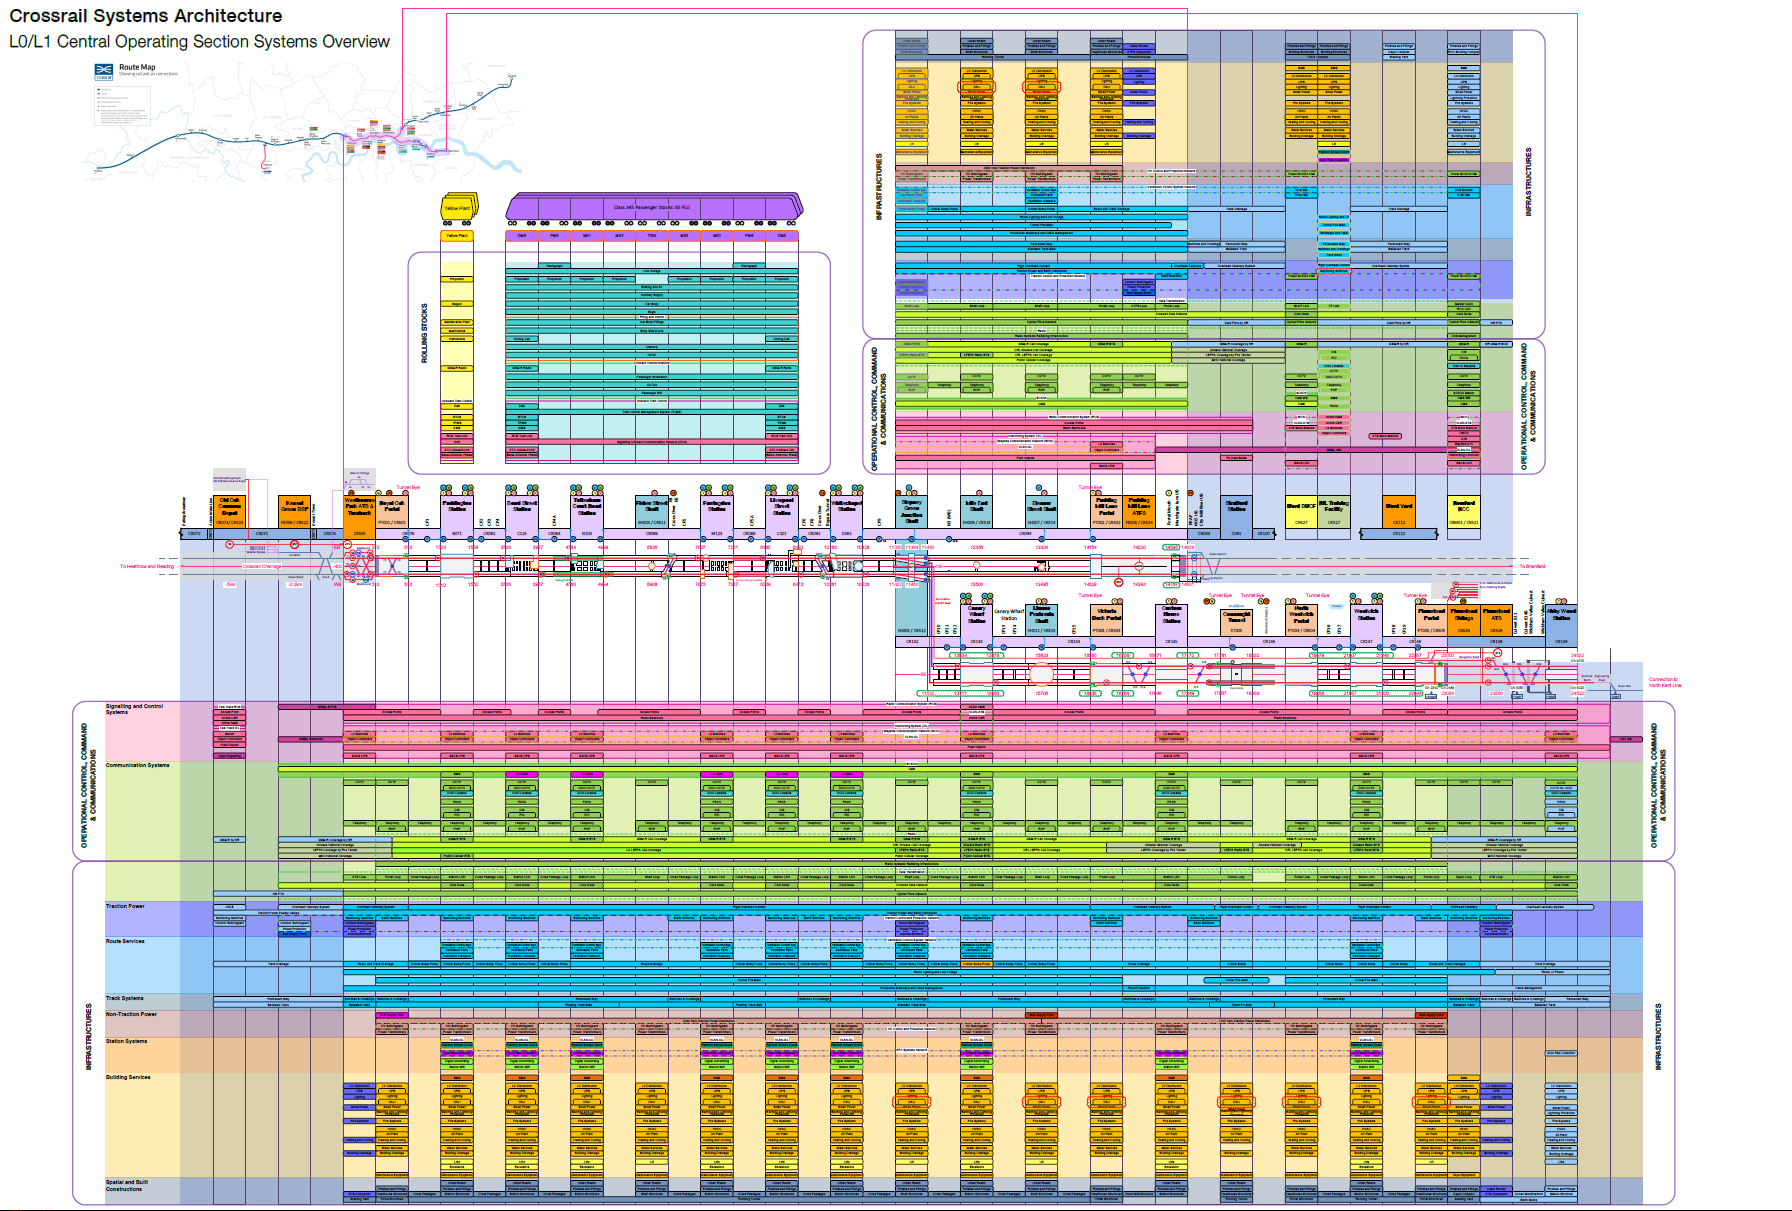 Systems Architecture Models In Crossrail Design And Delivery Automatic Switchingon Emergency Light Schematic Figure 15 L0 L1 Overview